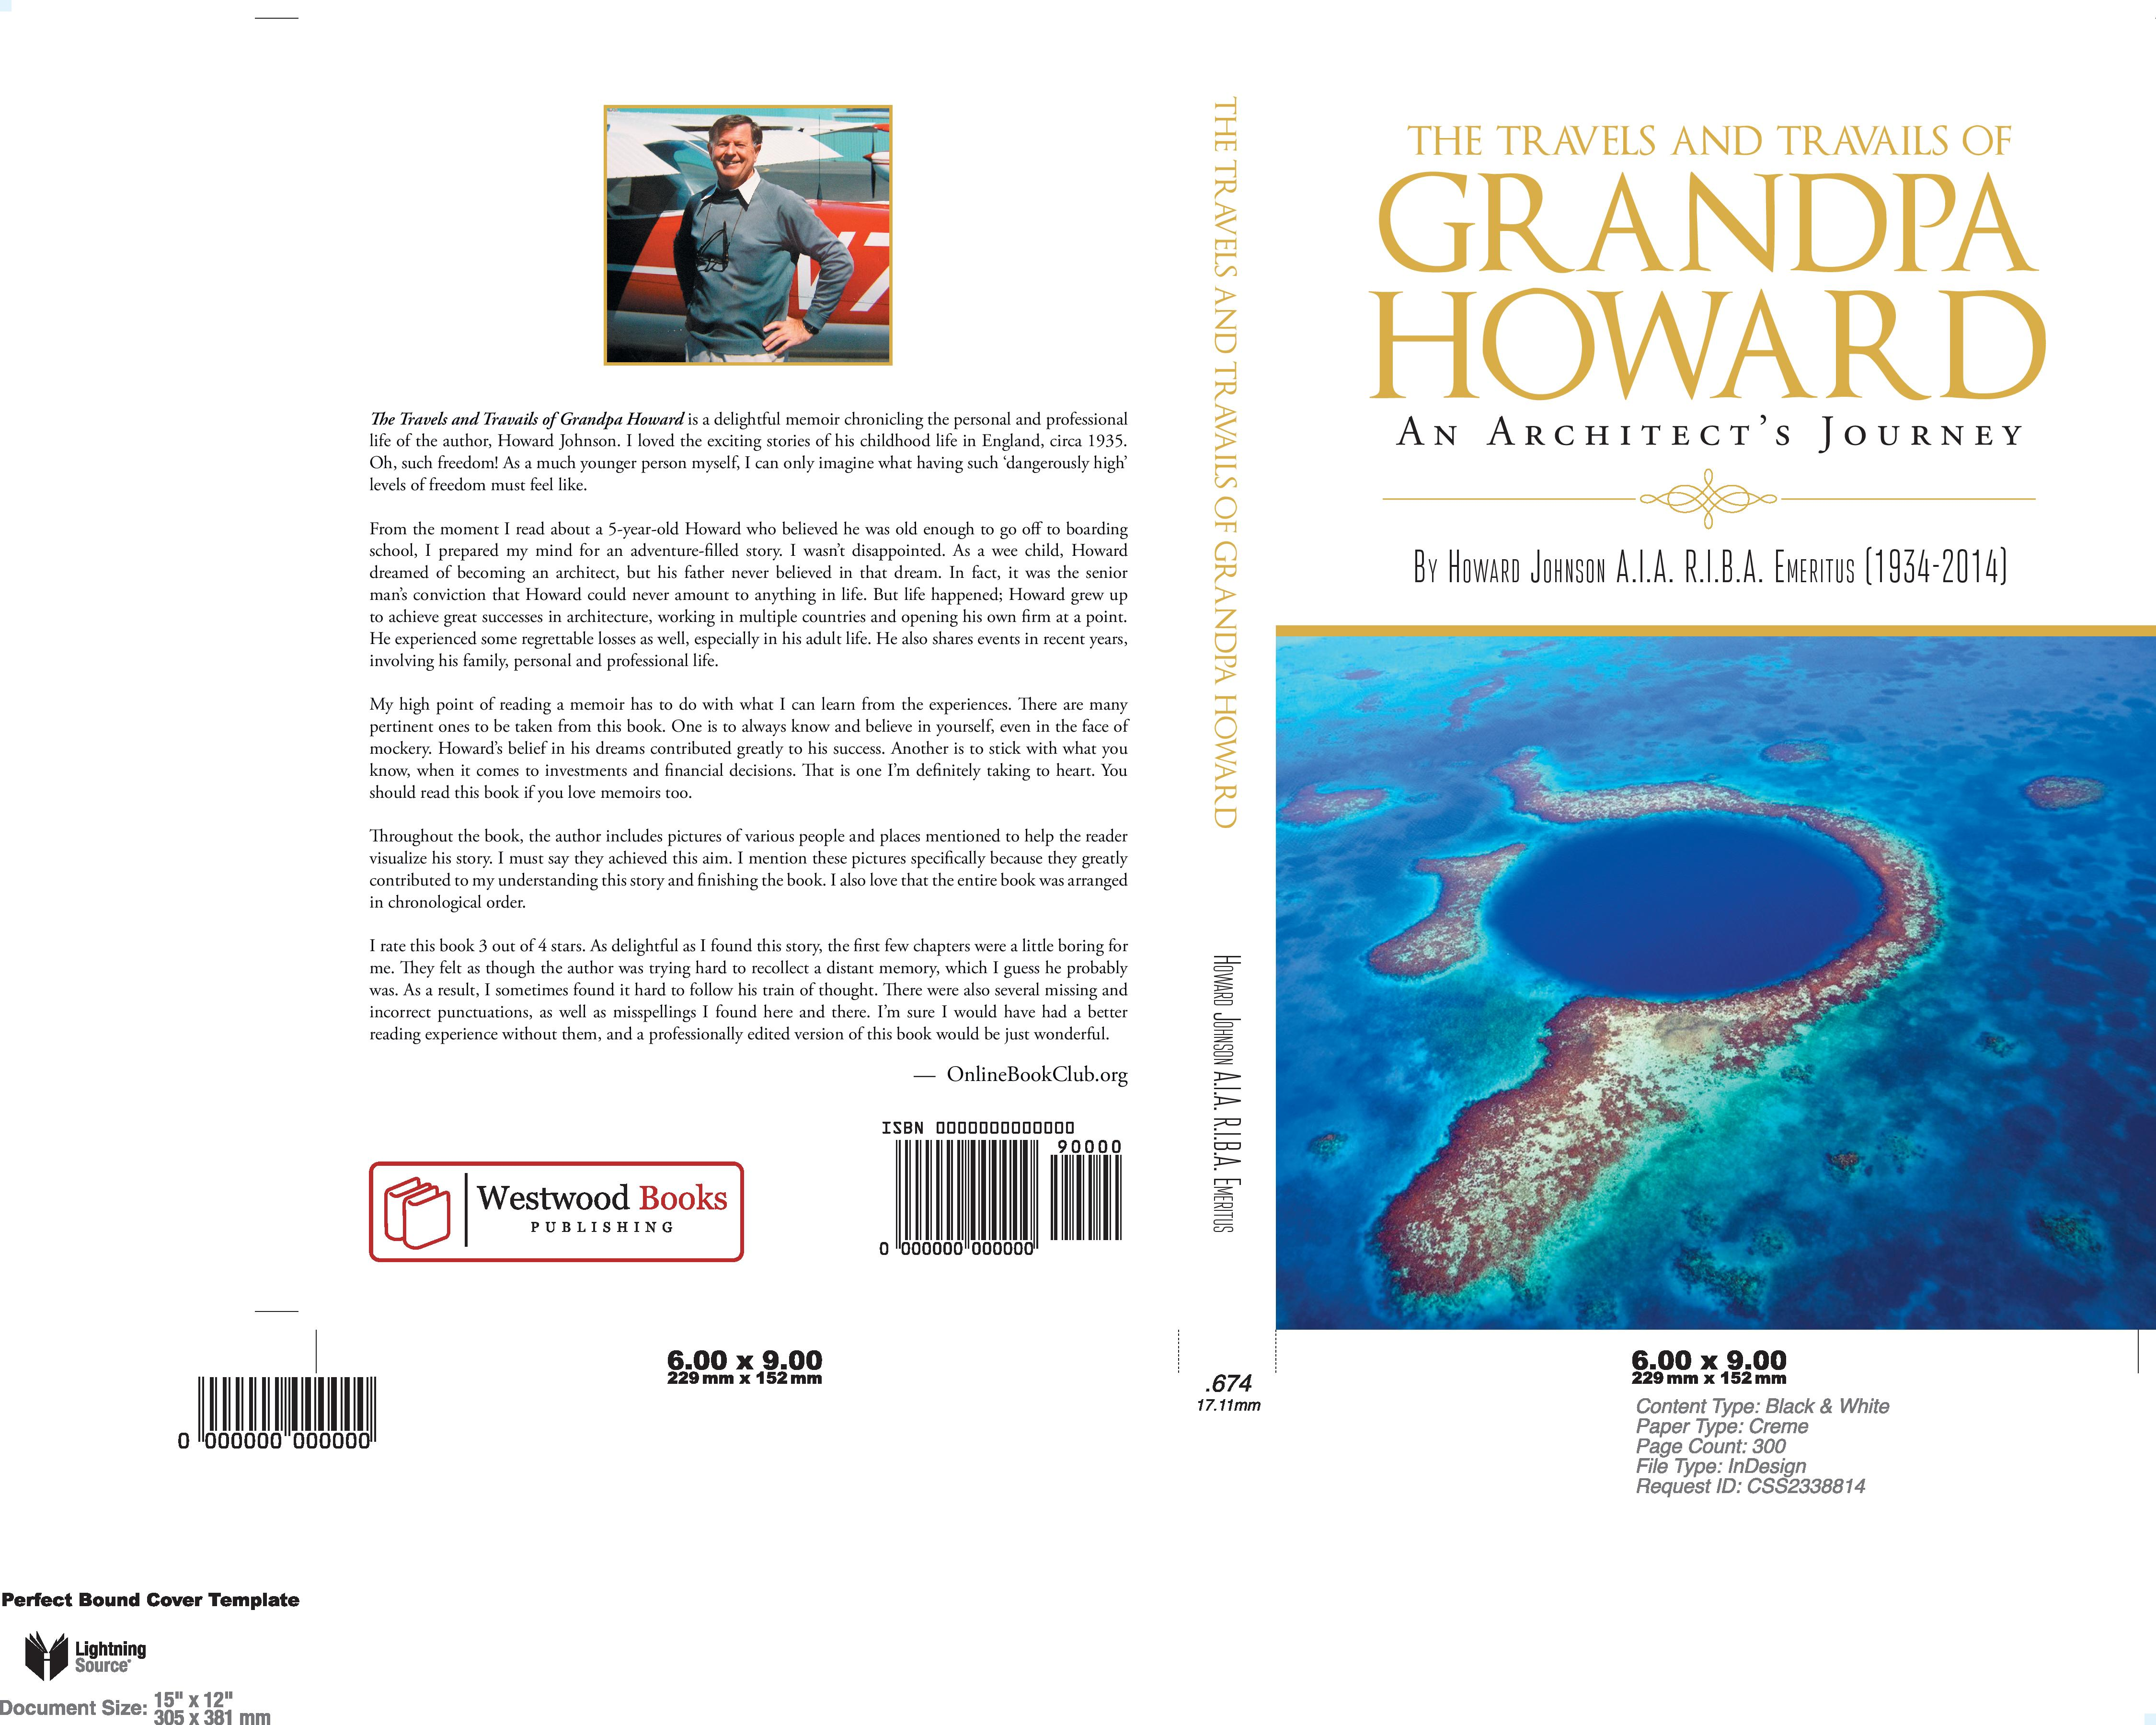 THE TRAVELS AND TRAVAILS OF GRANDPA HOWARD: